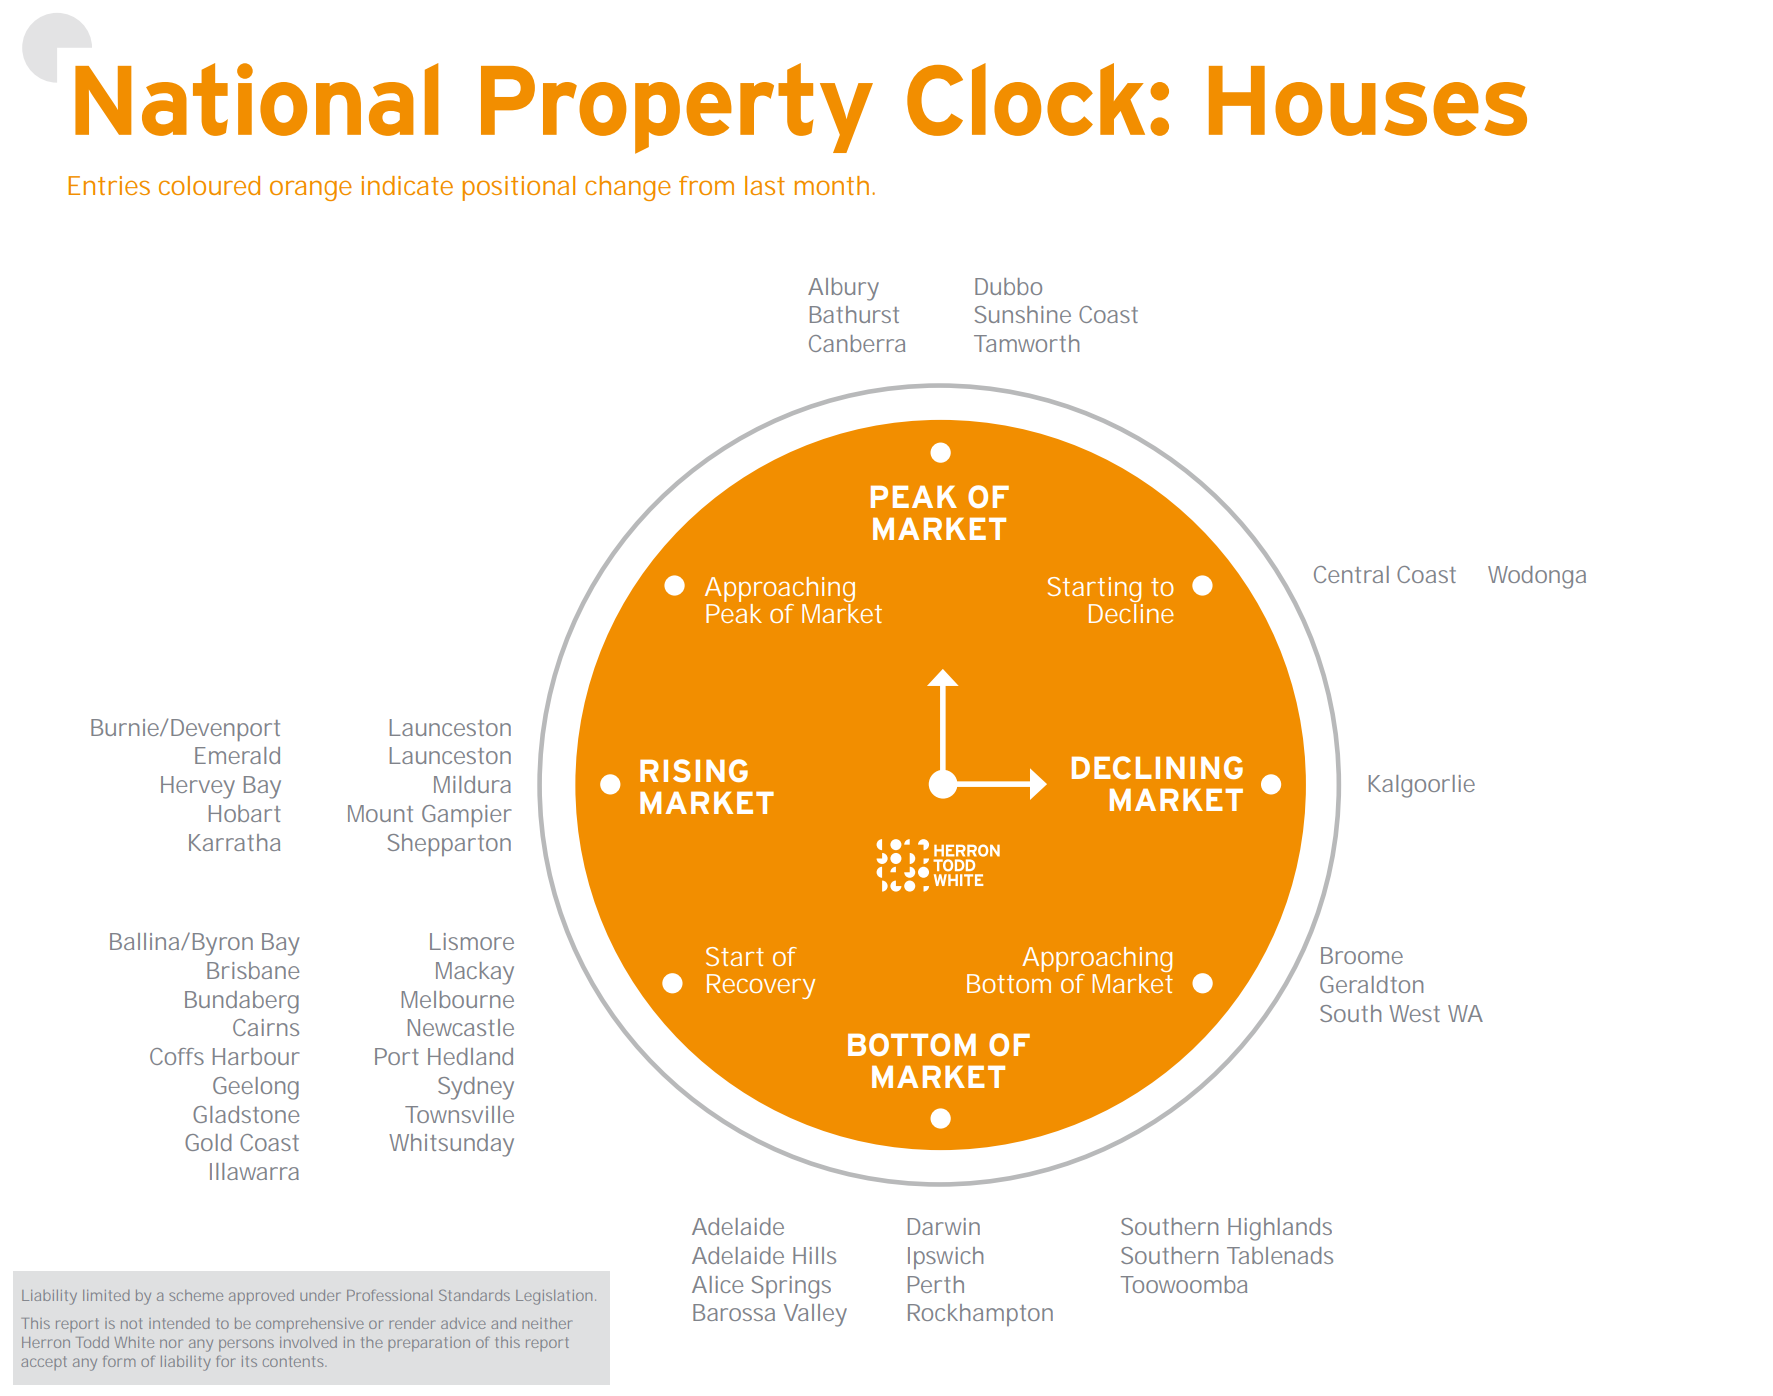 February Property Clock